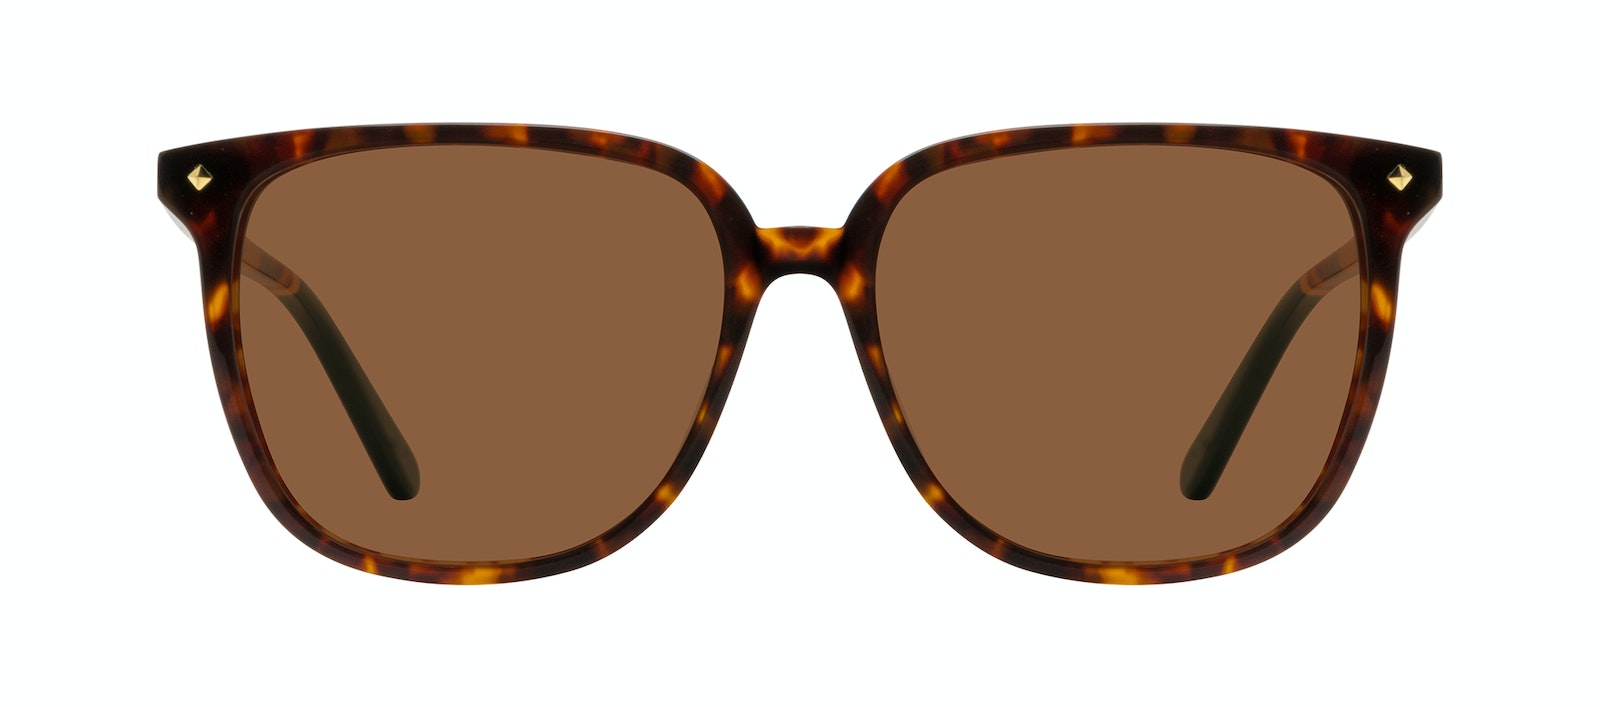 Affordable Fashion Glasses Sunglasses Women Gia Tortoise Front